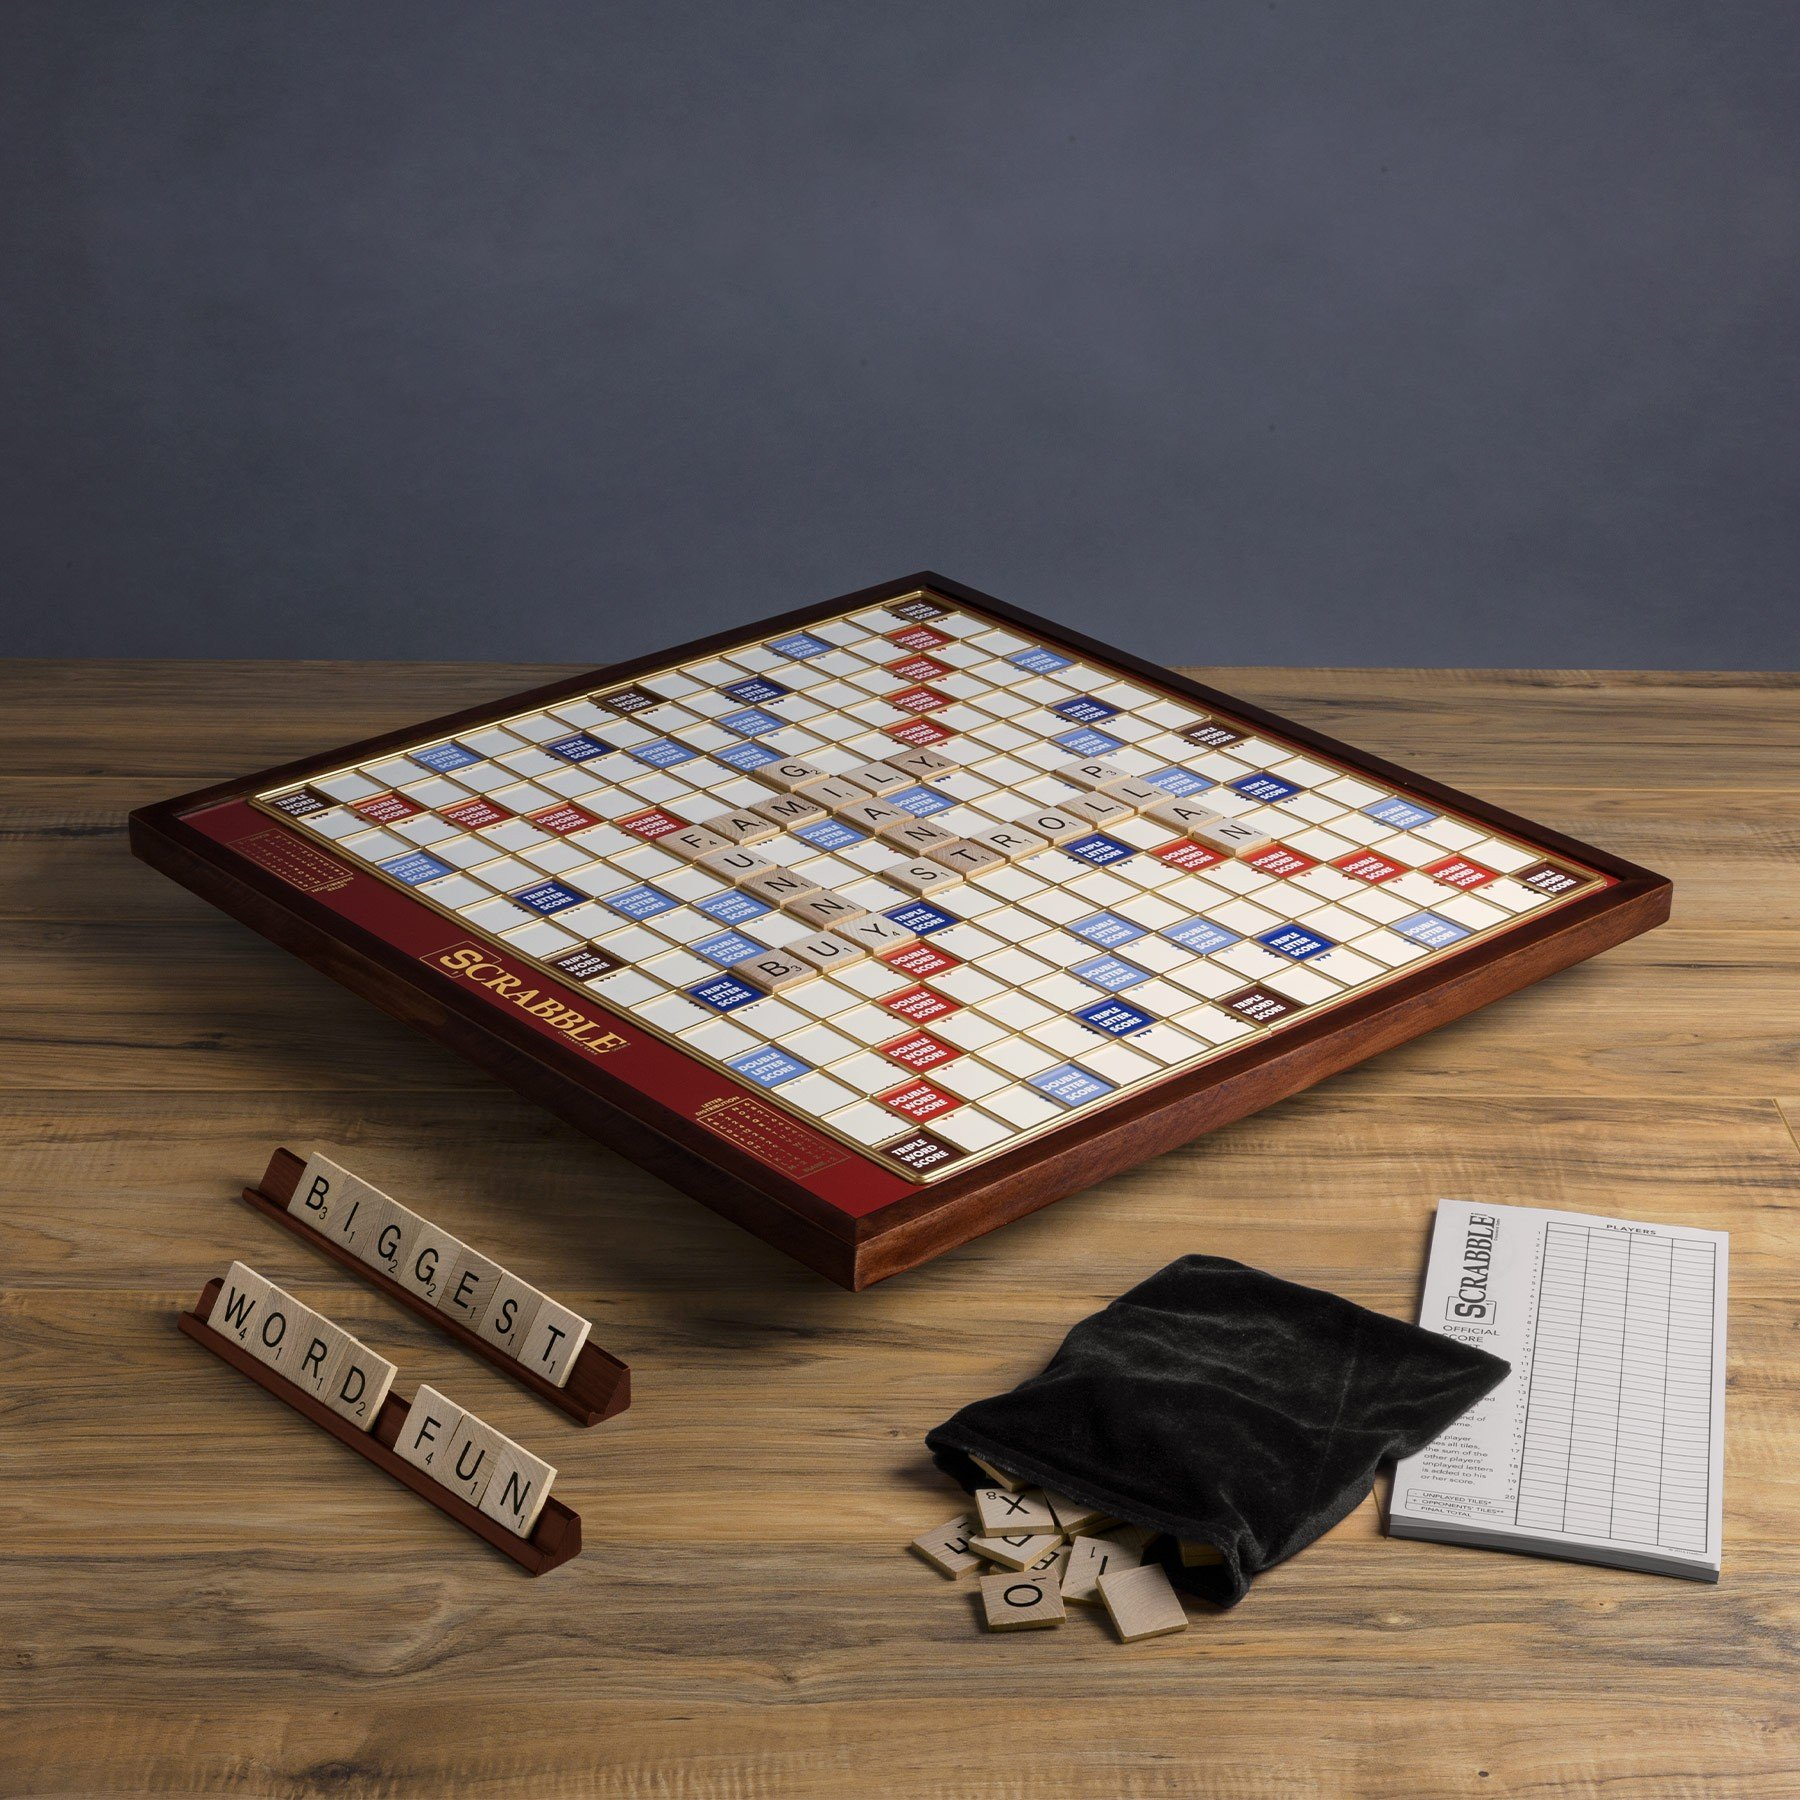 Deluxe Giant Scrabble Game by Scrabble (Image #3)